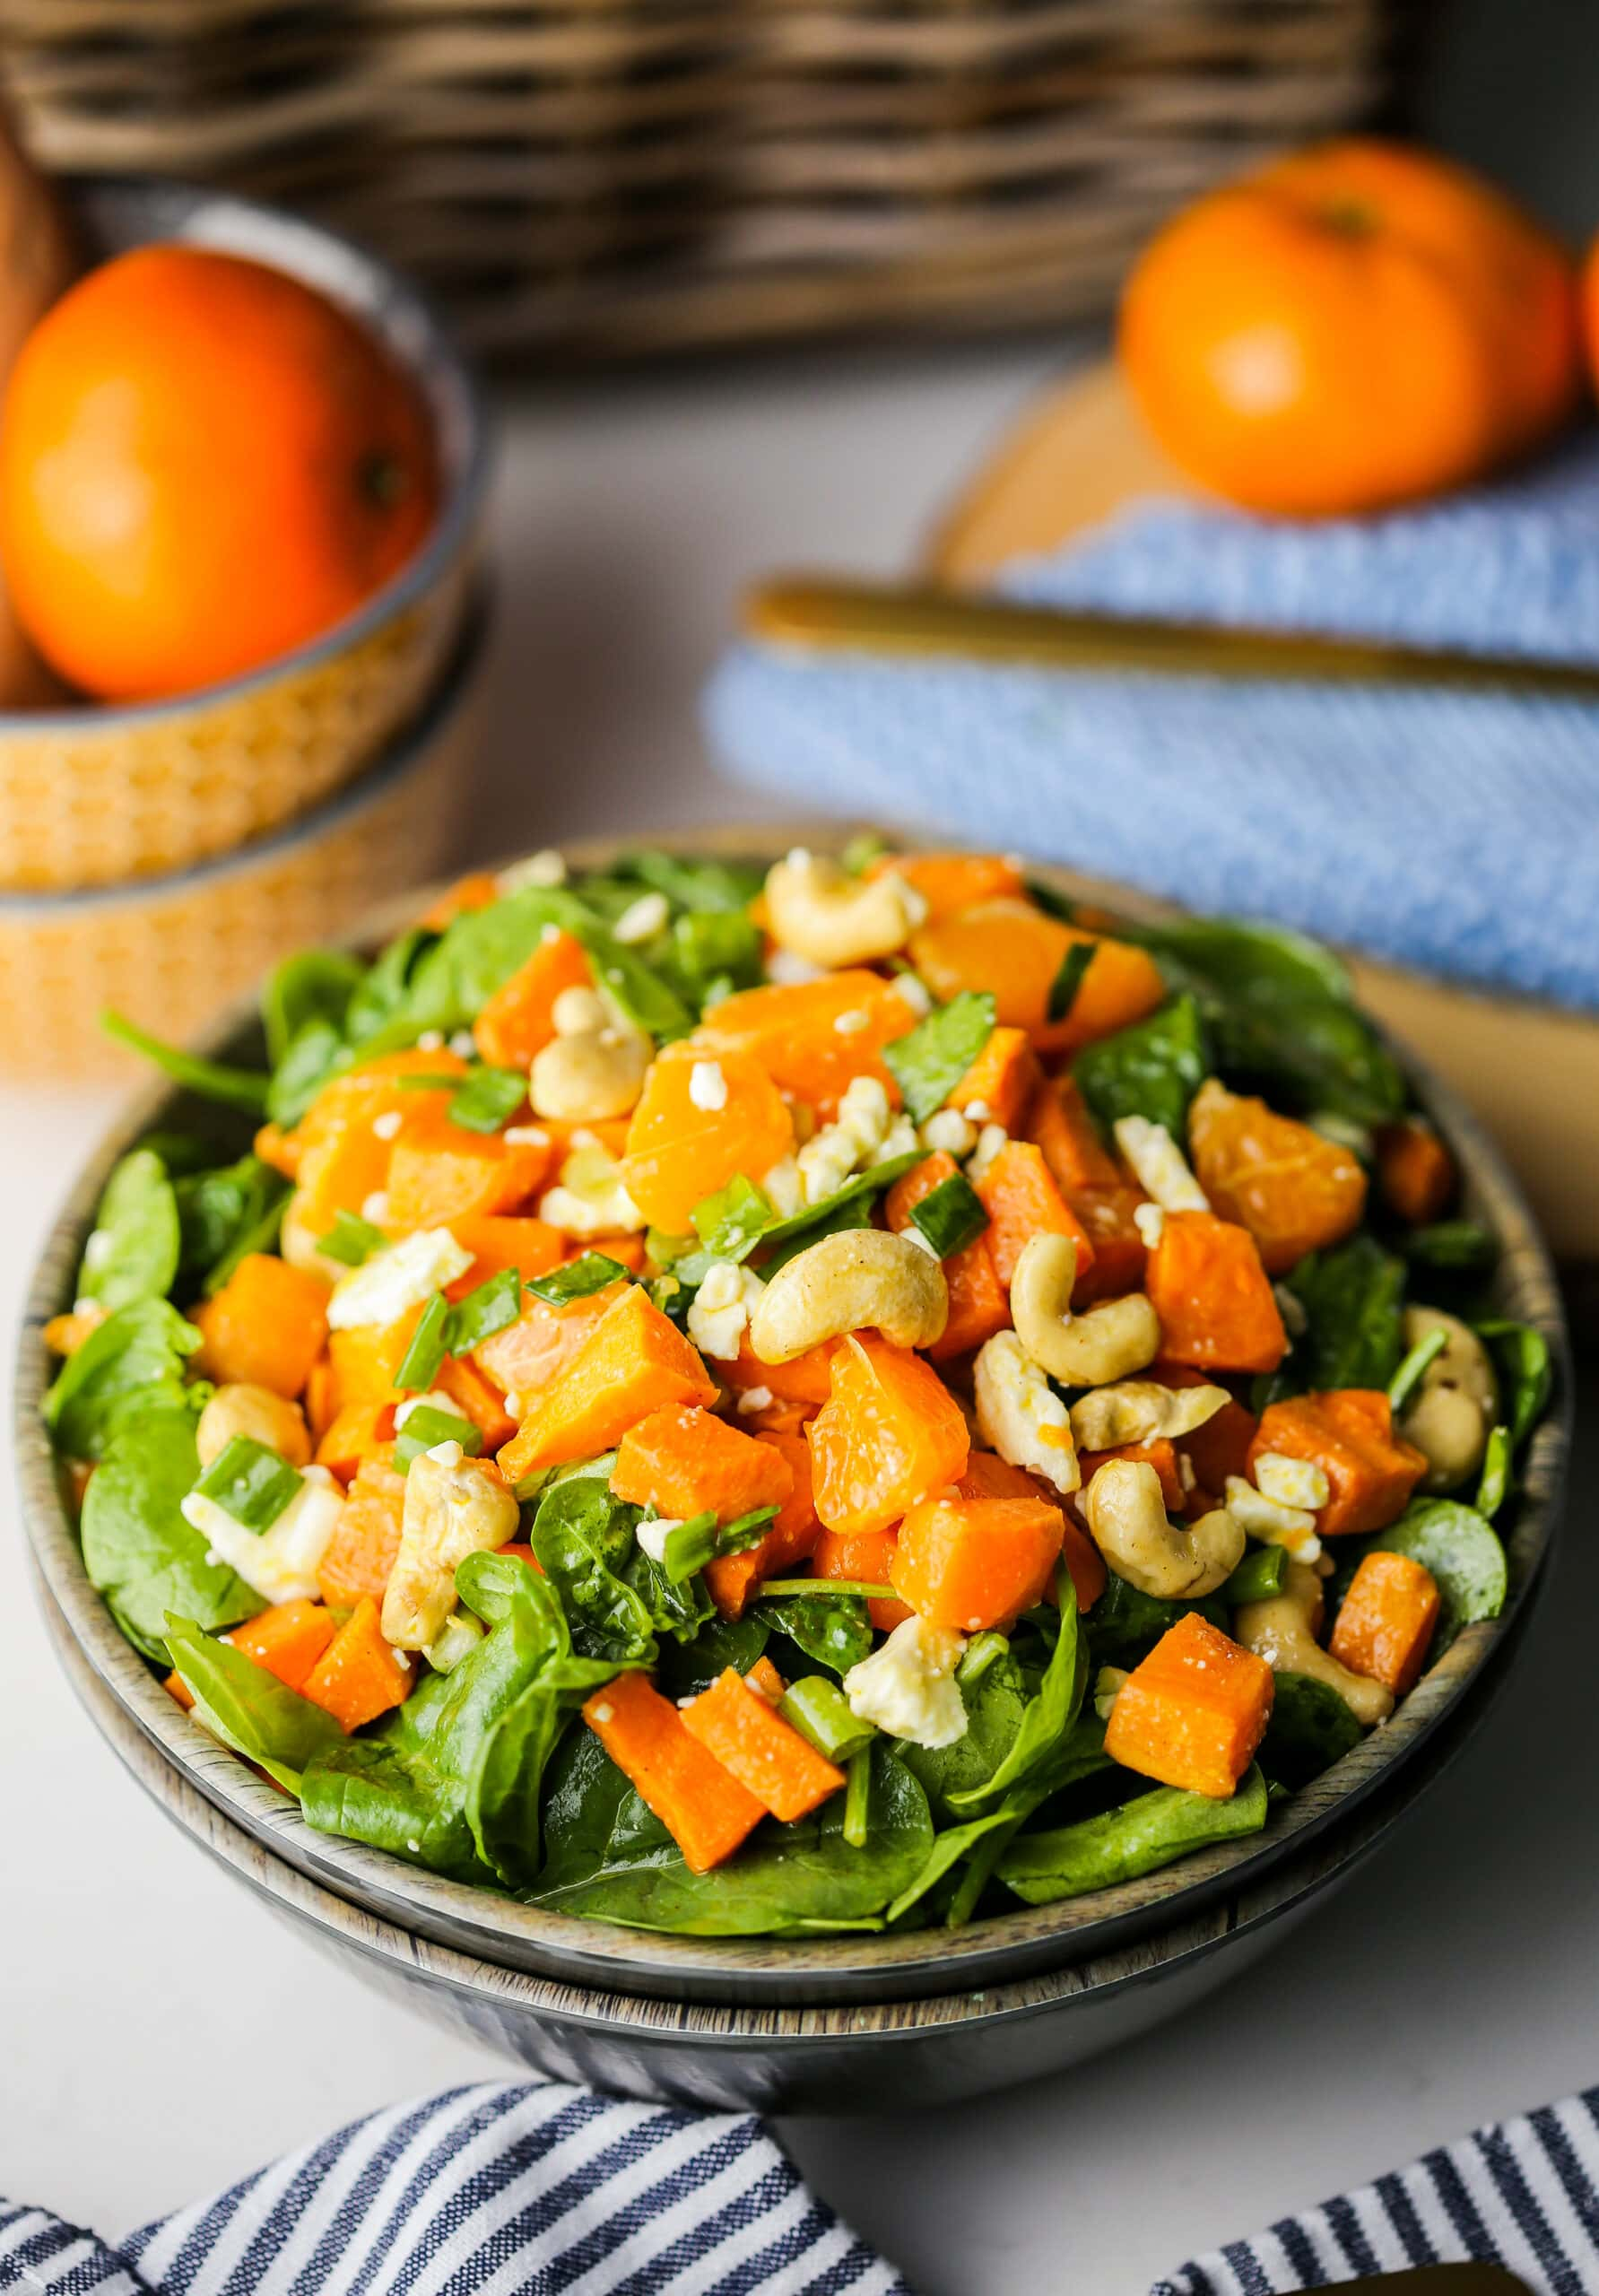 Sweet potato orange spinach salad in a wooden bowl.